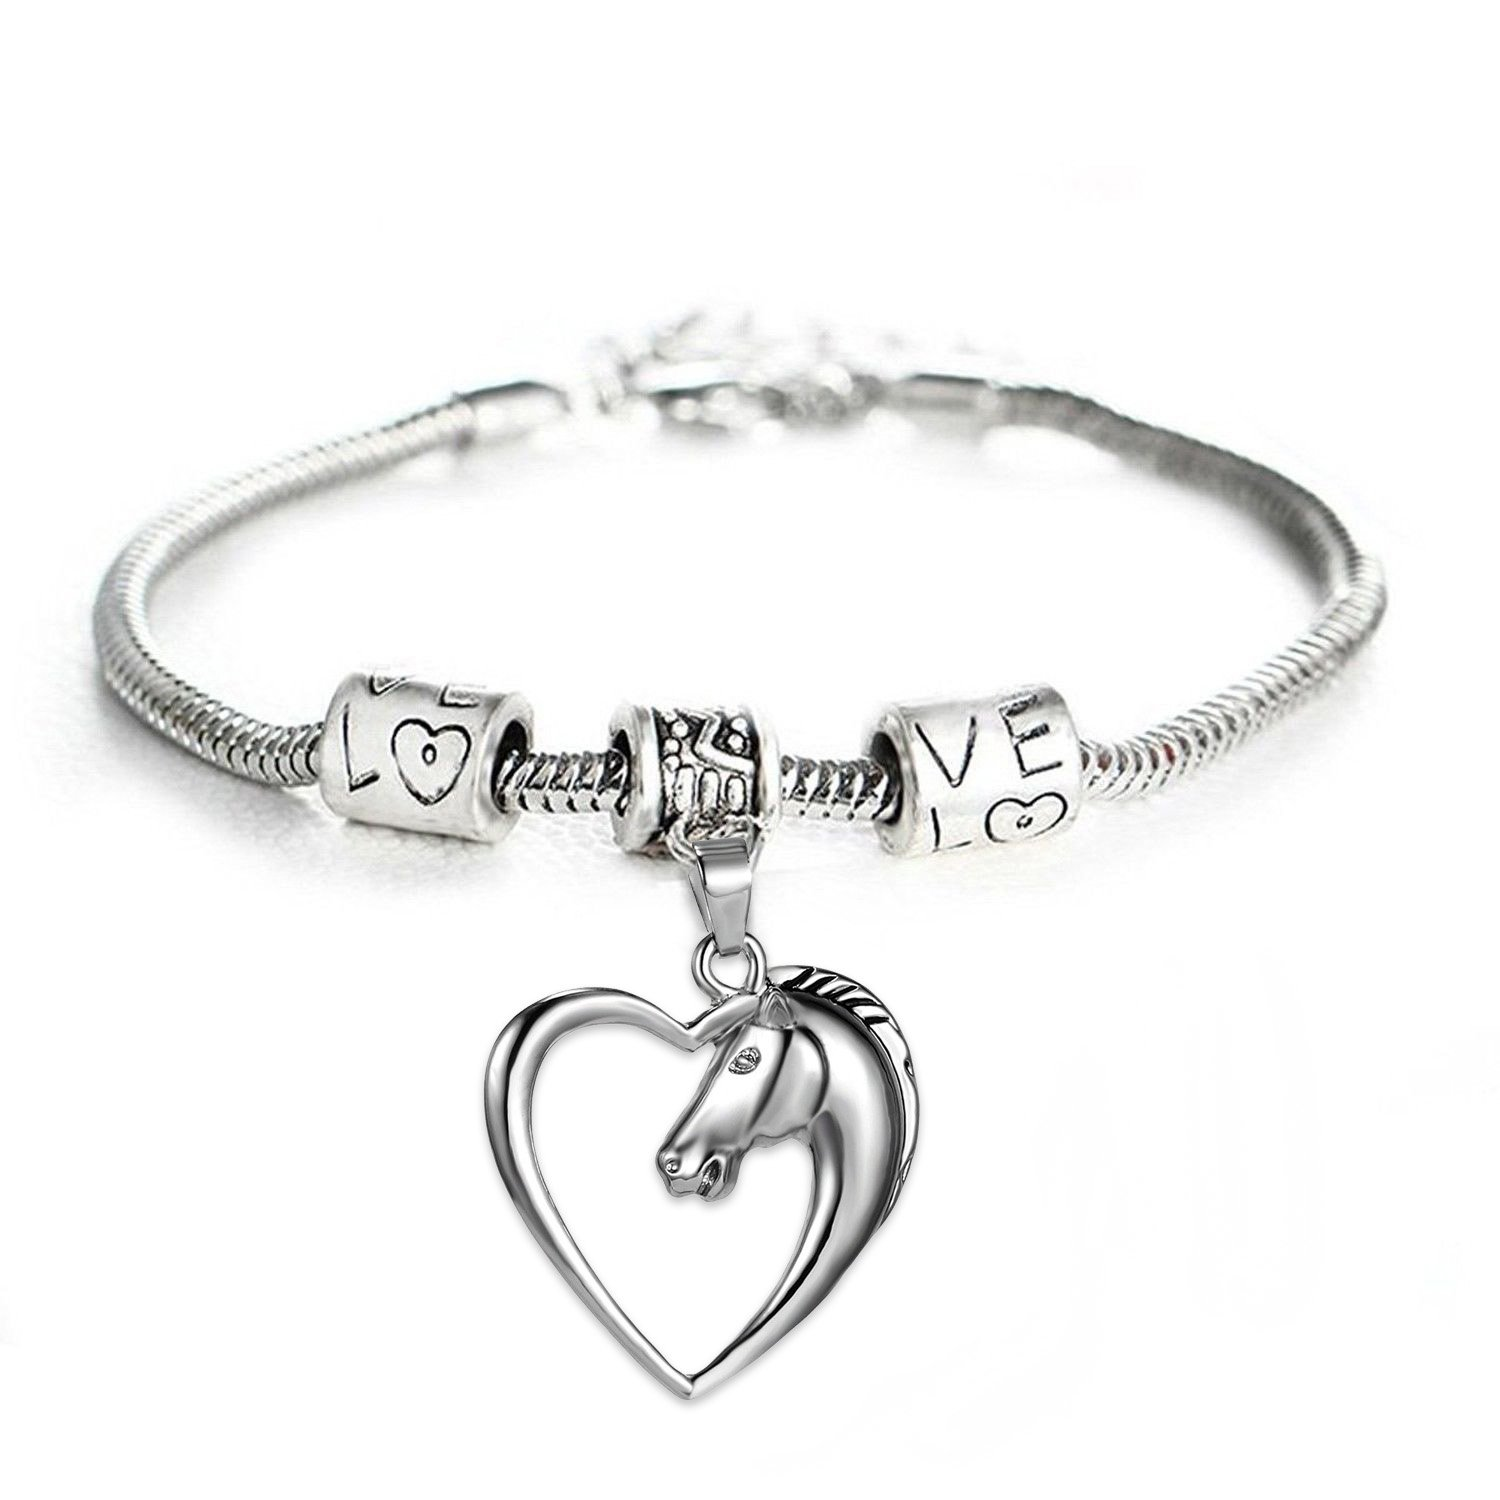 Horse Heart Charm Bracelet - Jewelry Gift for Family and Friends GlobalJewels B07BGWLCKM_US